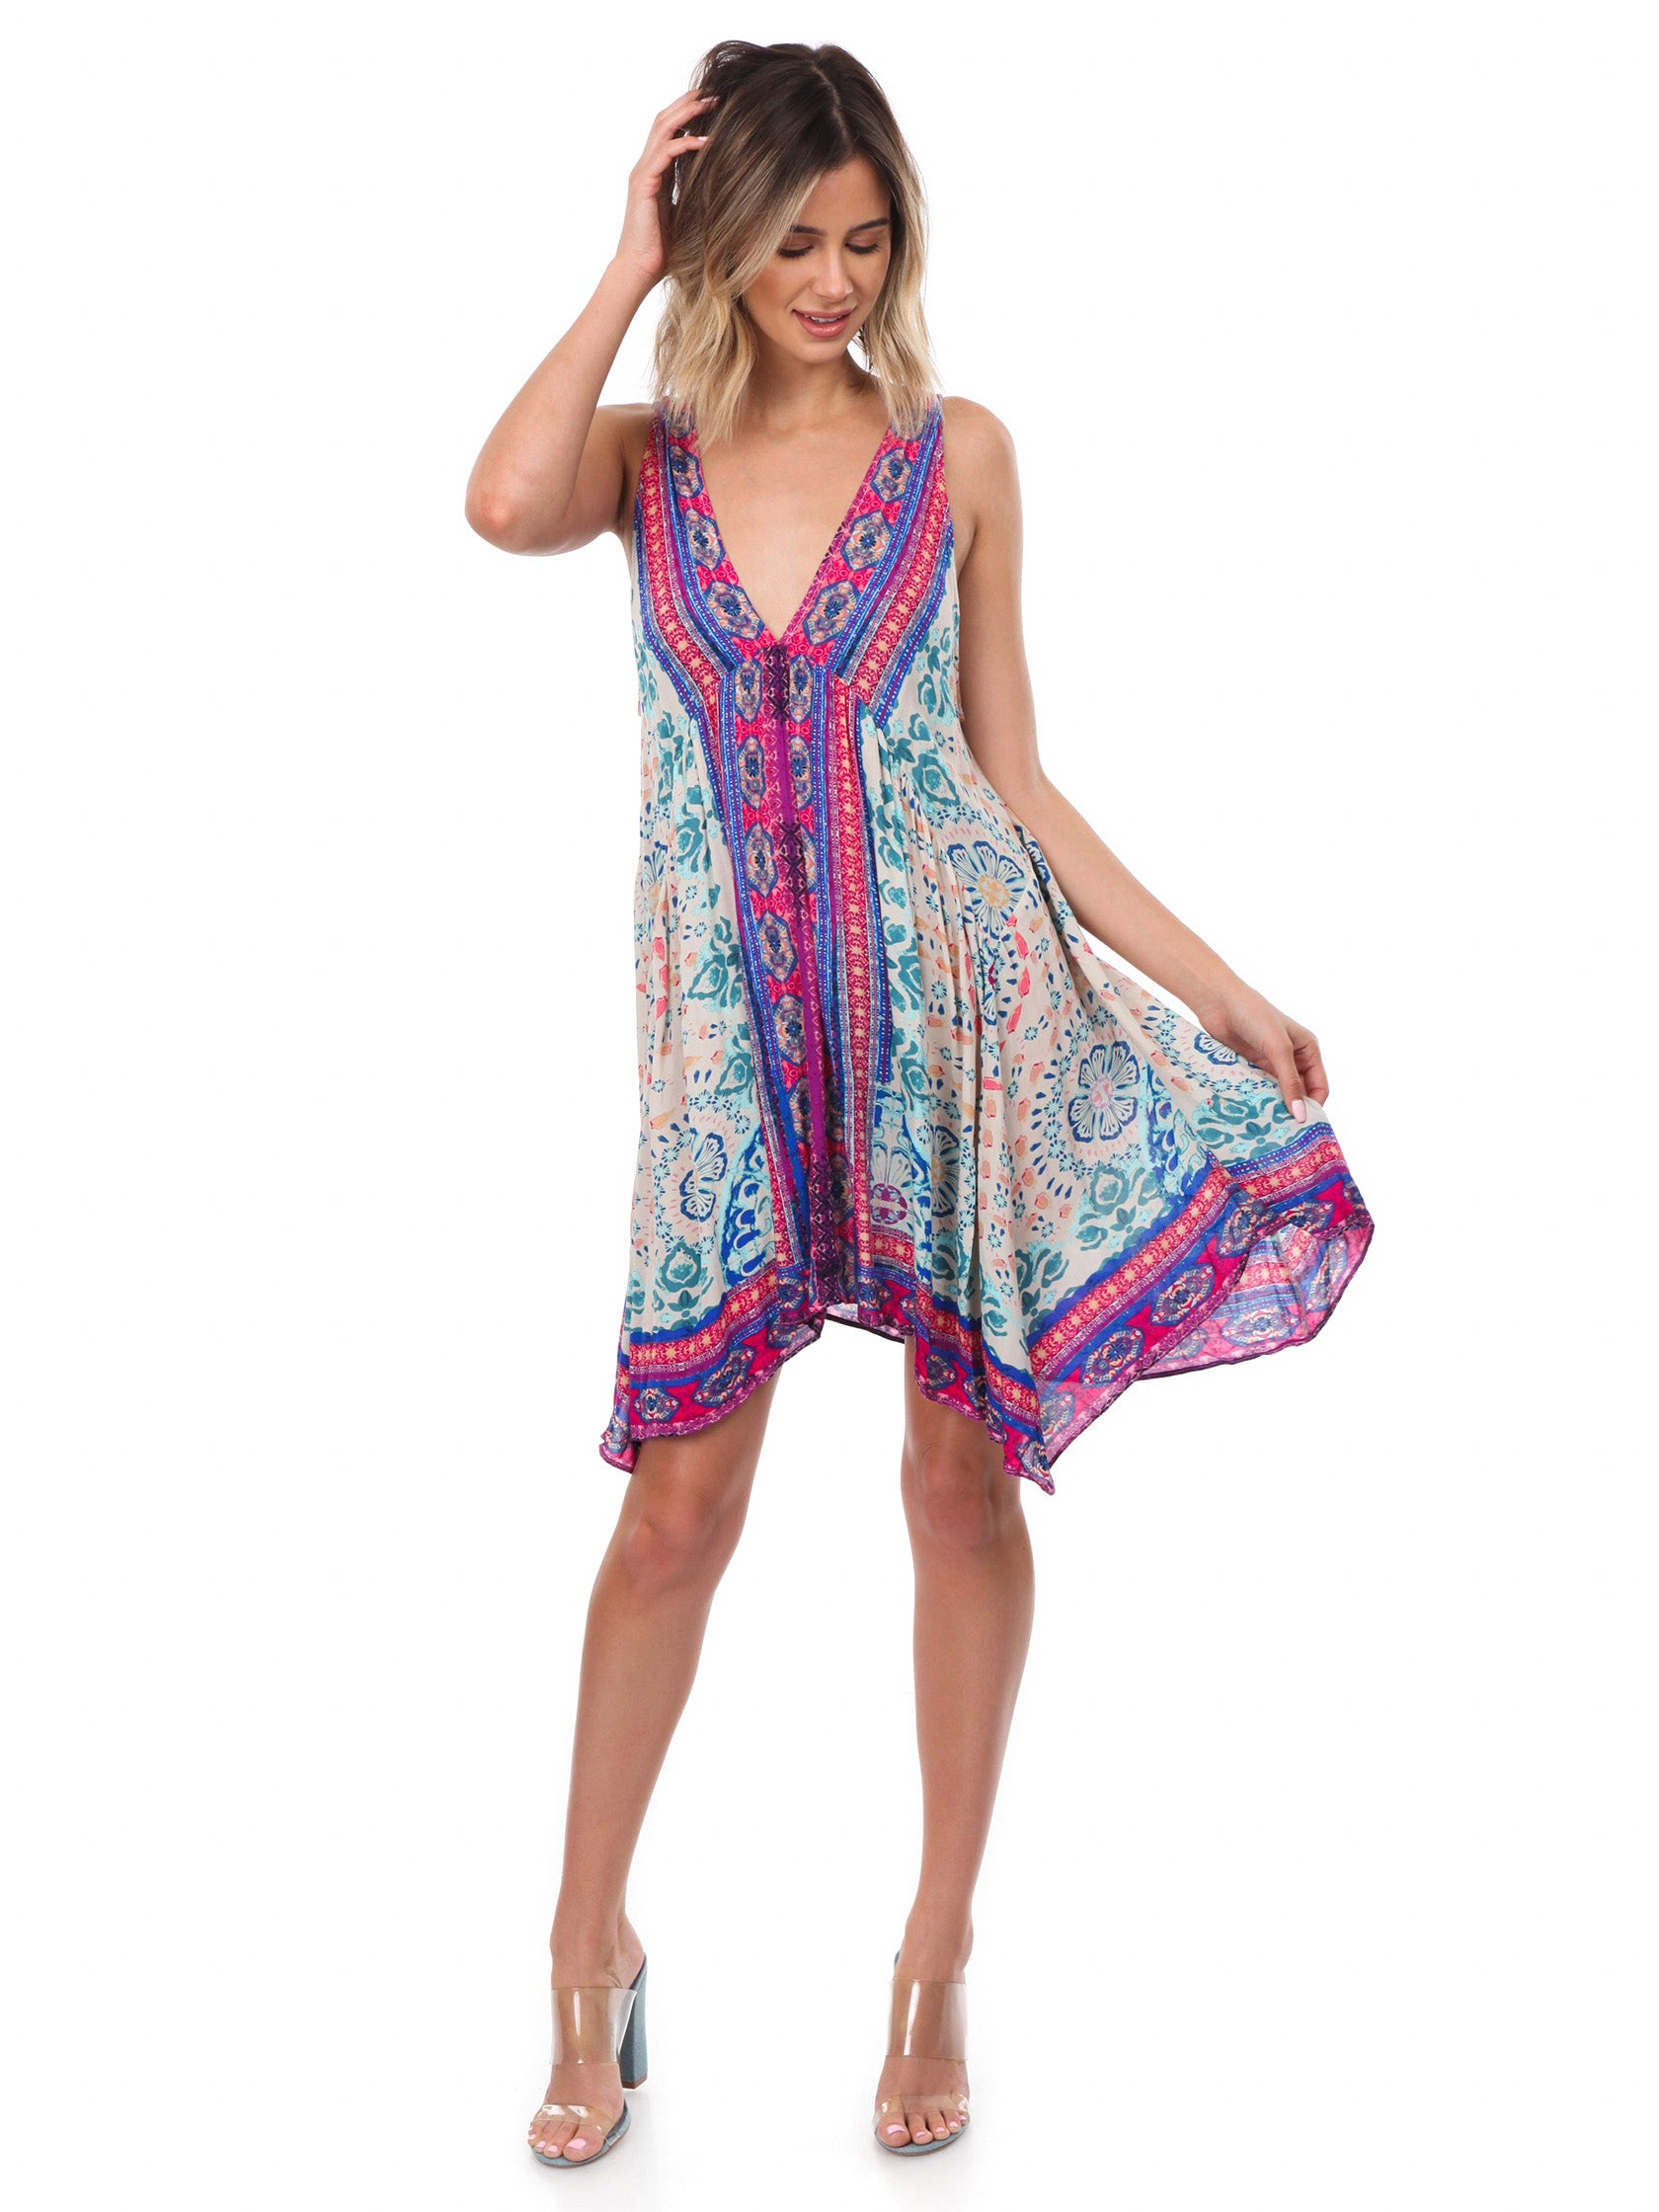 aecca0225626c Women outfit in a dress rental from Free People called Gypsy Trapeze Dress